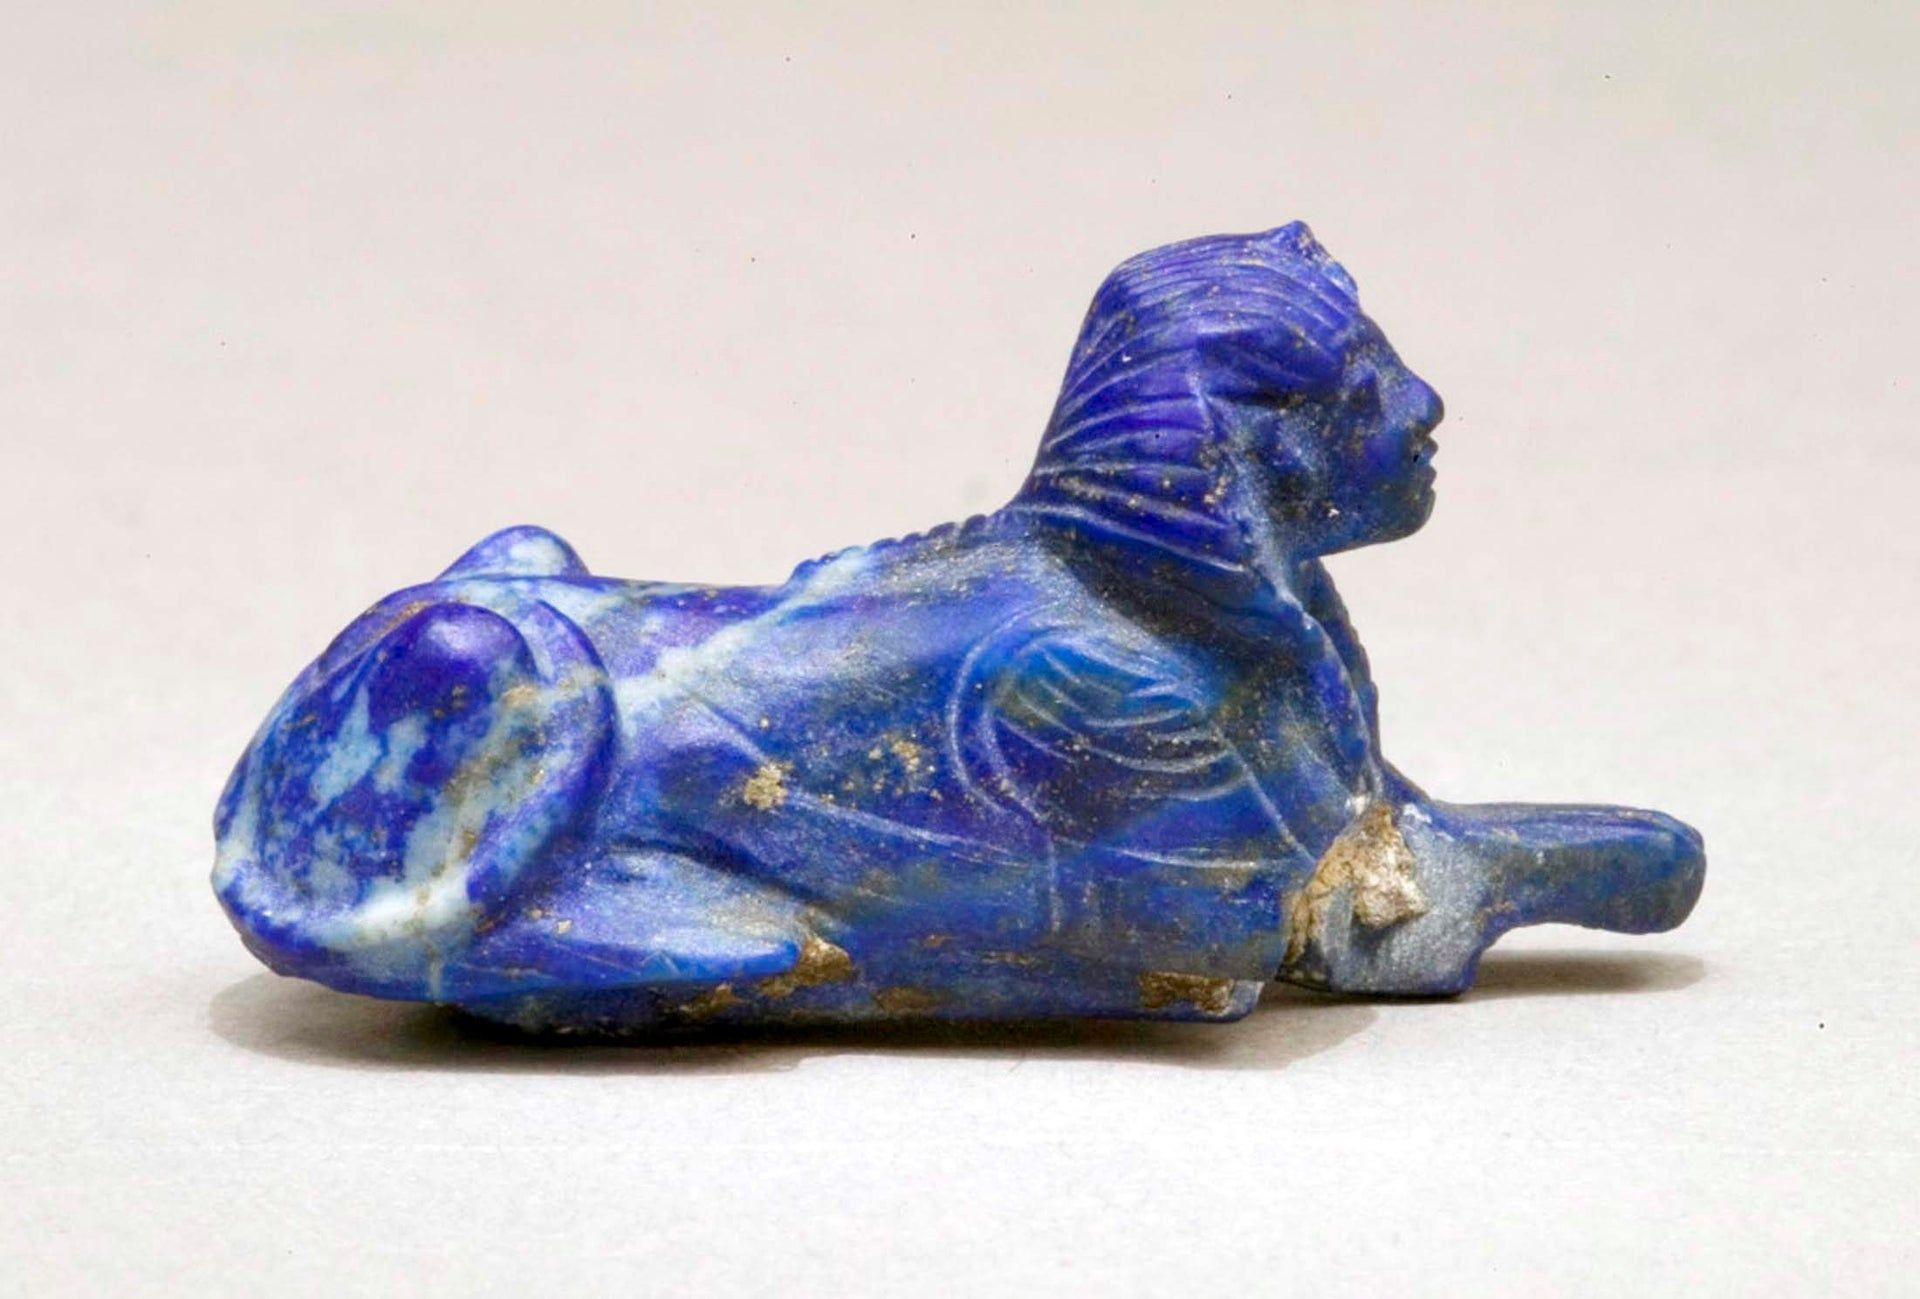 Bracelet inlay in the form of a sphinx made of lapis lazuli attributed to Tutankhamun's tomb, which was discovered by Howard Carter in 1922 in the Valley of the Kings is seen in this handout picture released on November 9, 2010 by the Egyptian Supreme Council of Antiquities and Metropolitan Museum of Art